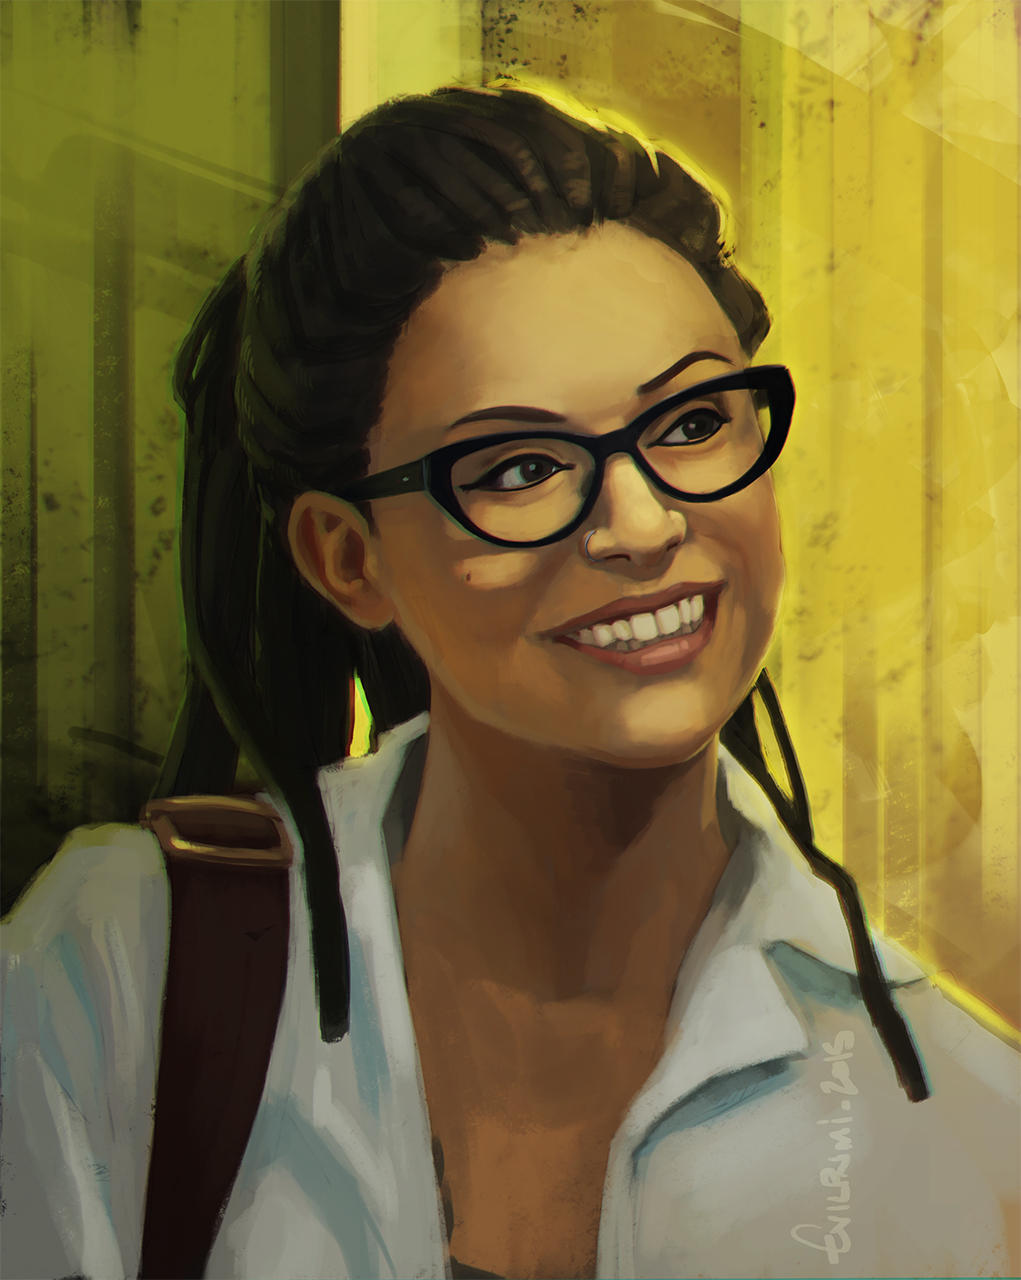 Training - Study : Orphan Black - Cosima Niehaus by EvilPNMI